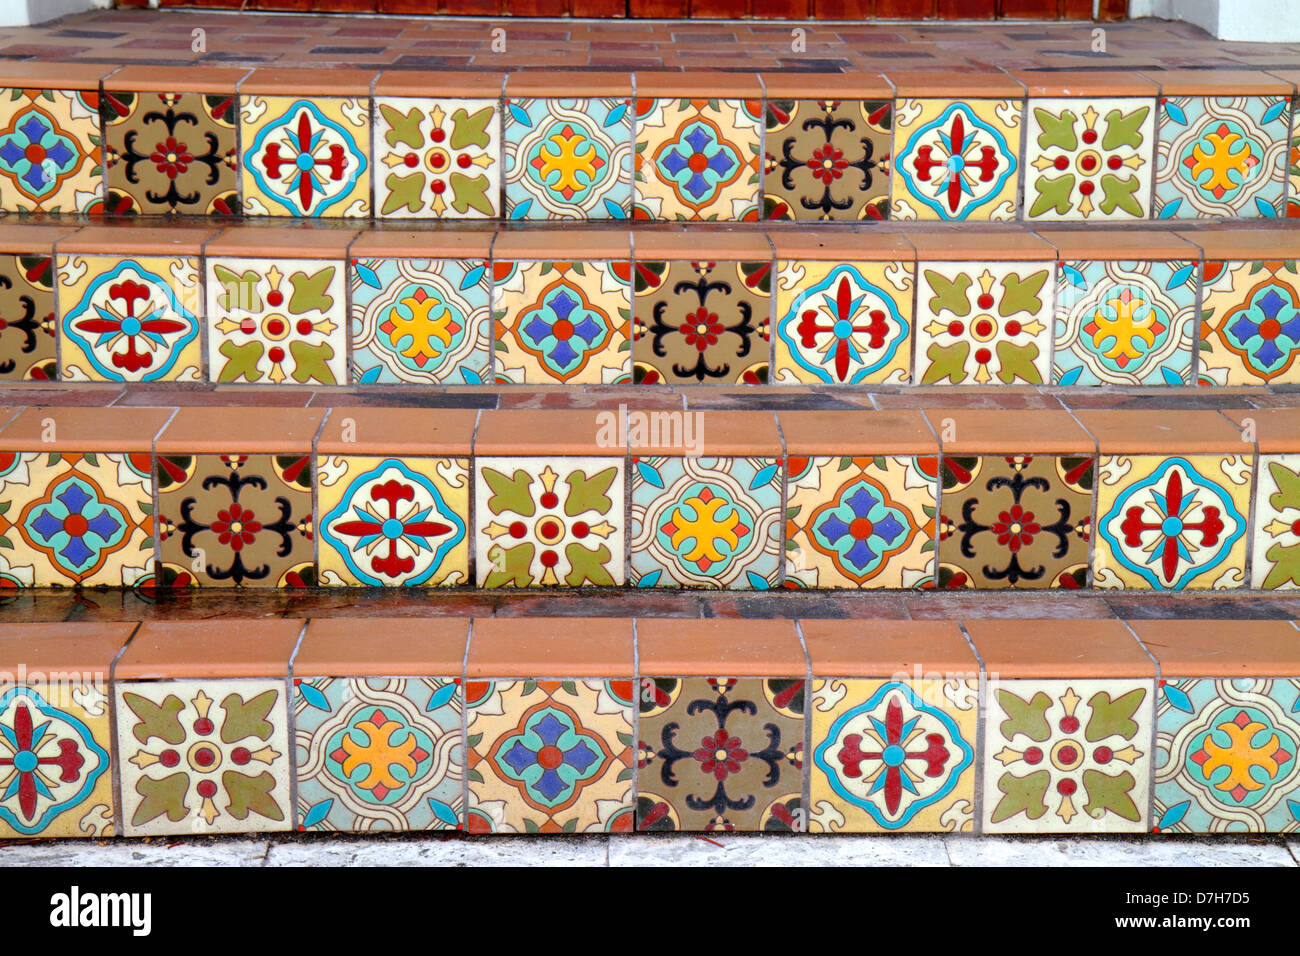 Spanish Ceramic Tiles In Style Stock Photos Spanish Ceramic Tiles